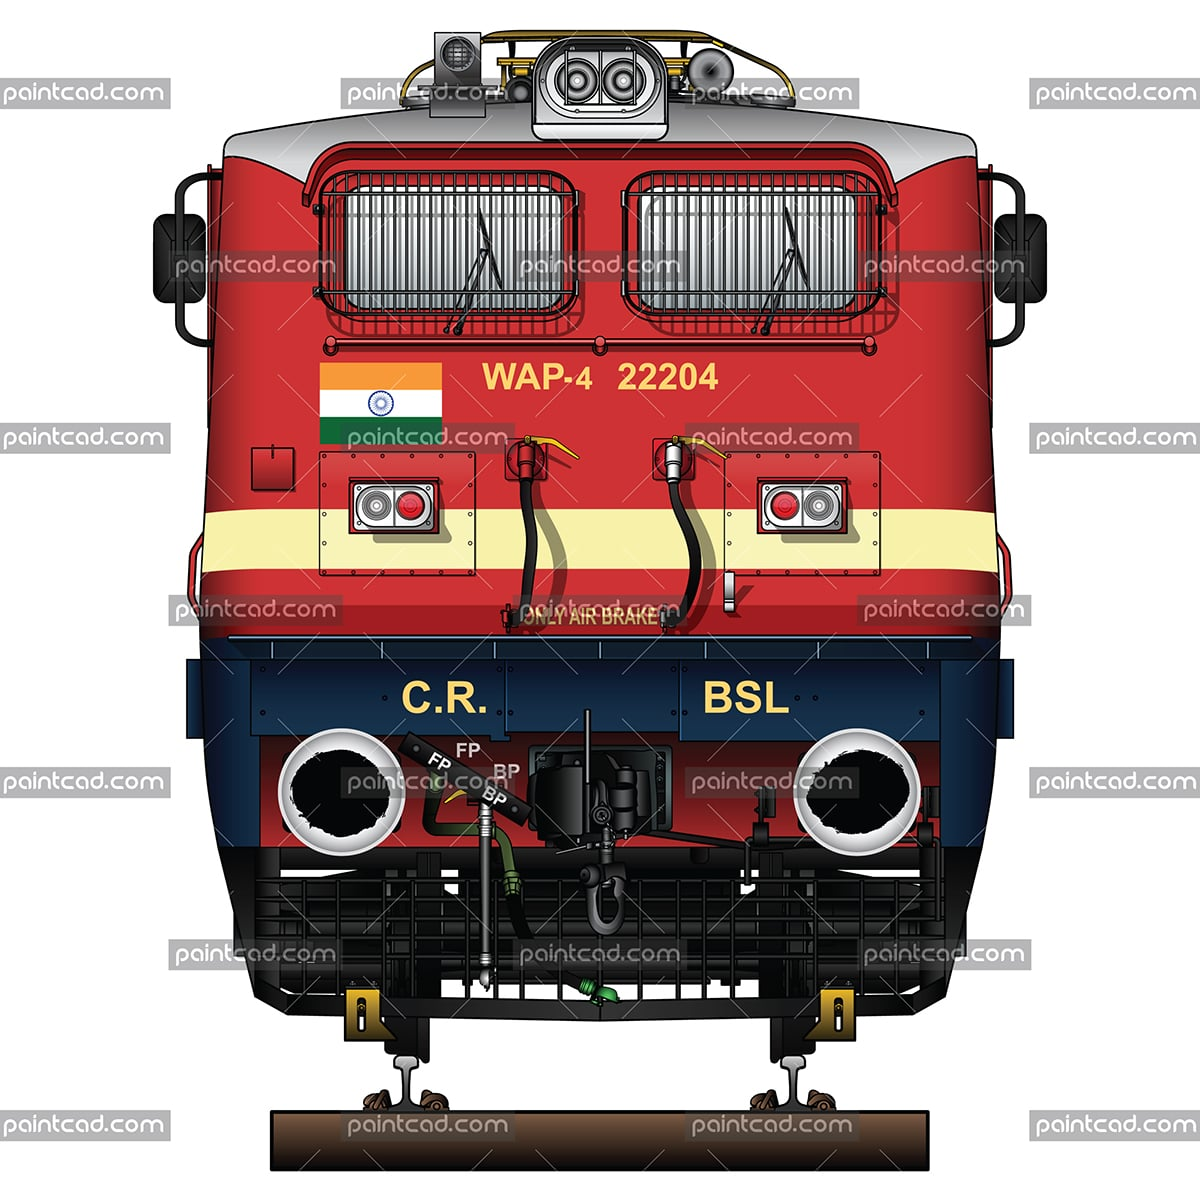 "IMPORTANT: EDITORIAL USE ONLY! Vector illustration with front view of passenger electric locomotive WAP-4 used in Indian Railways. The engine is equipped with pantographs Two Stone India (Calcutta) AM-12, frame frontal plow, AAR tightlock couplers and chain link couplers. Abbreviation WAP-4 mean: W - Broad Gauge, A – AC electric traction, P – Passenger and ""4"" - the serial number of the modification of locomotive. Detailed color drawing with inscriptions in English for railway company, engine type, serial number and Indian flag. Isolated object over white background."